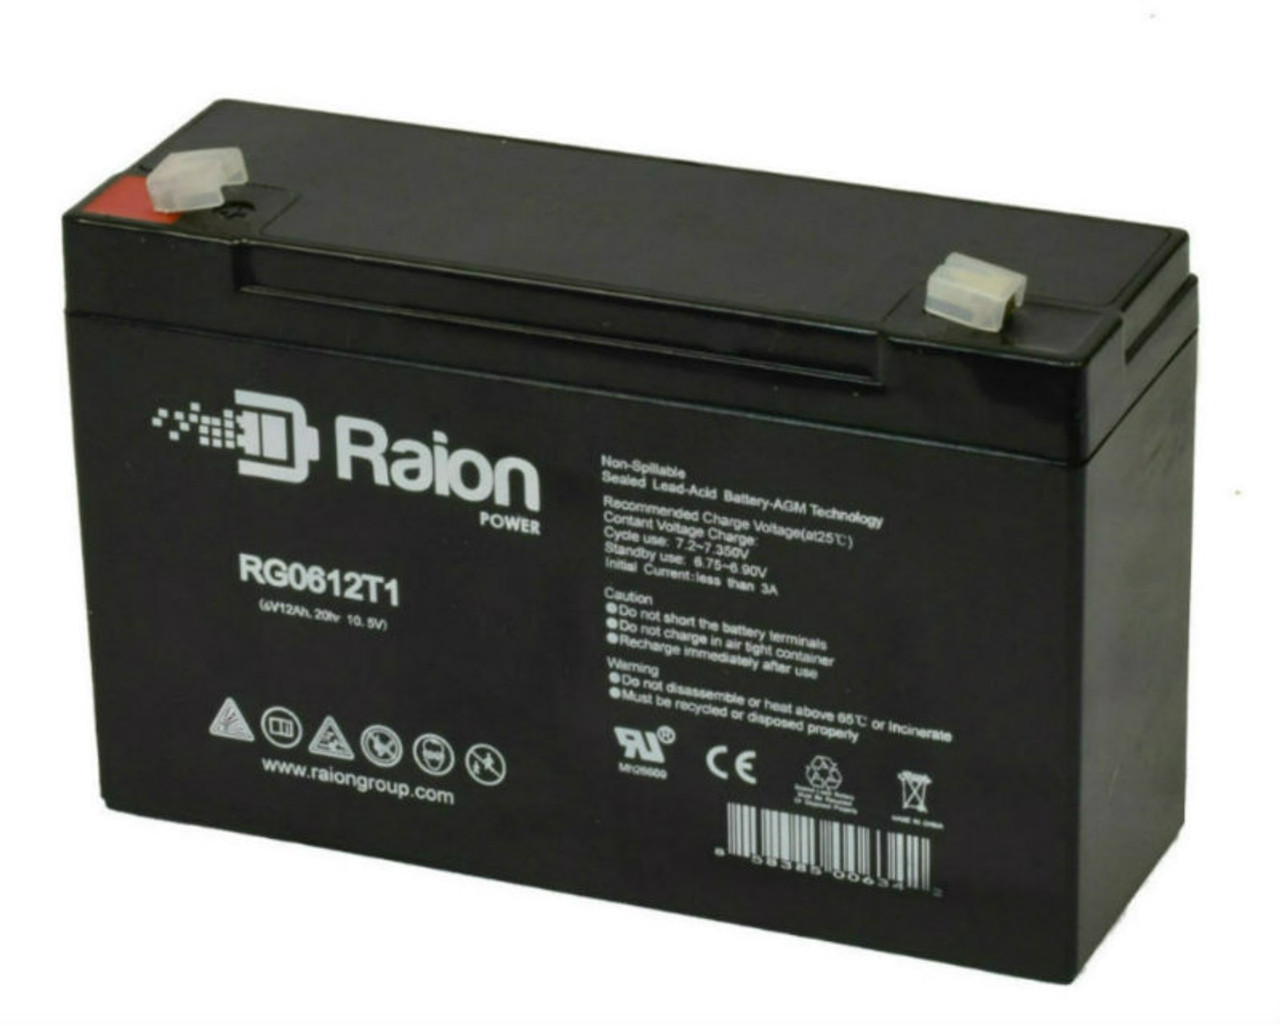 Raion Power RG06120T1 Replacement Battery Pack for Elan 1BB emergency light